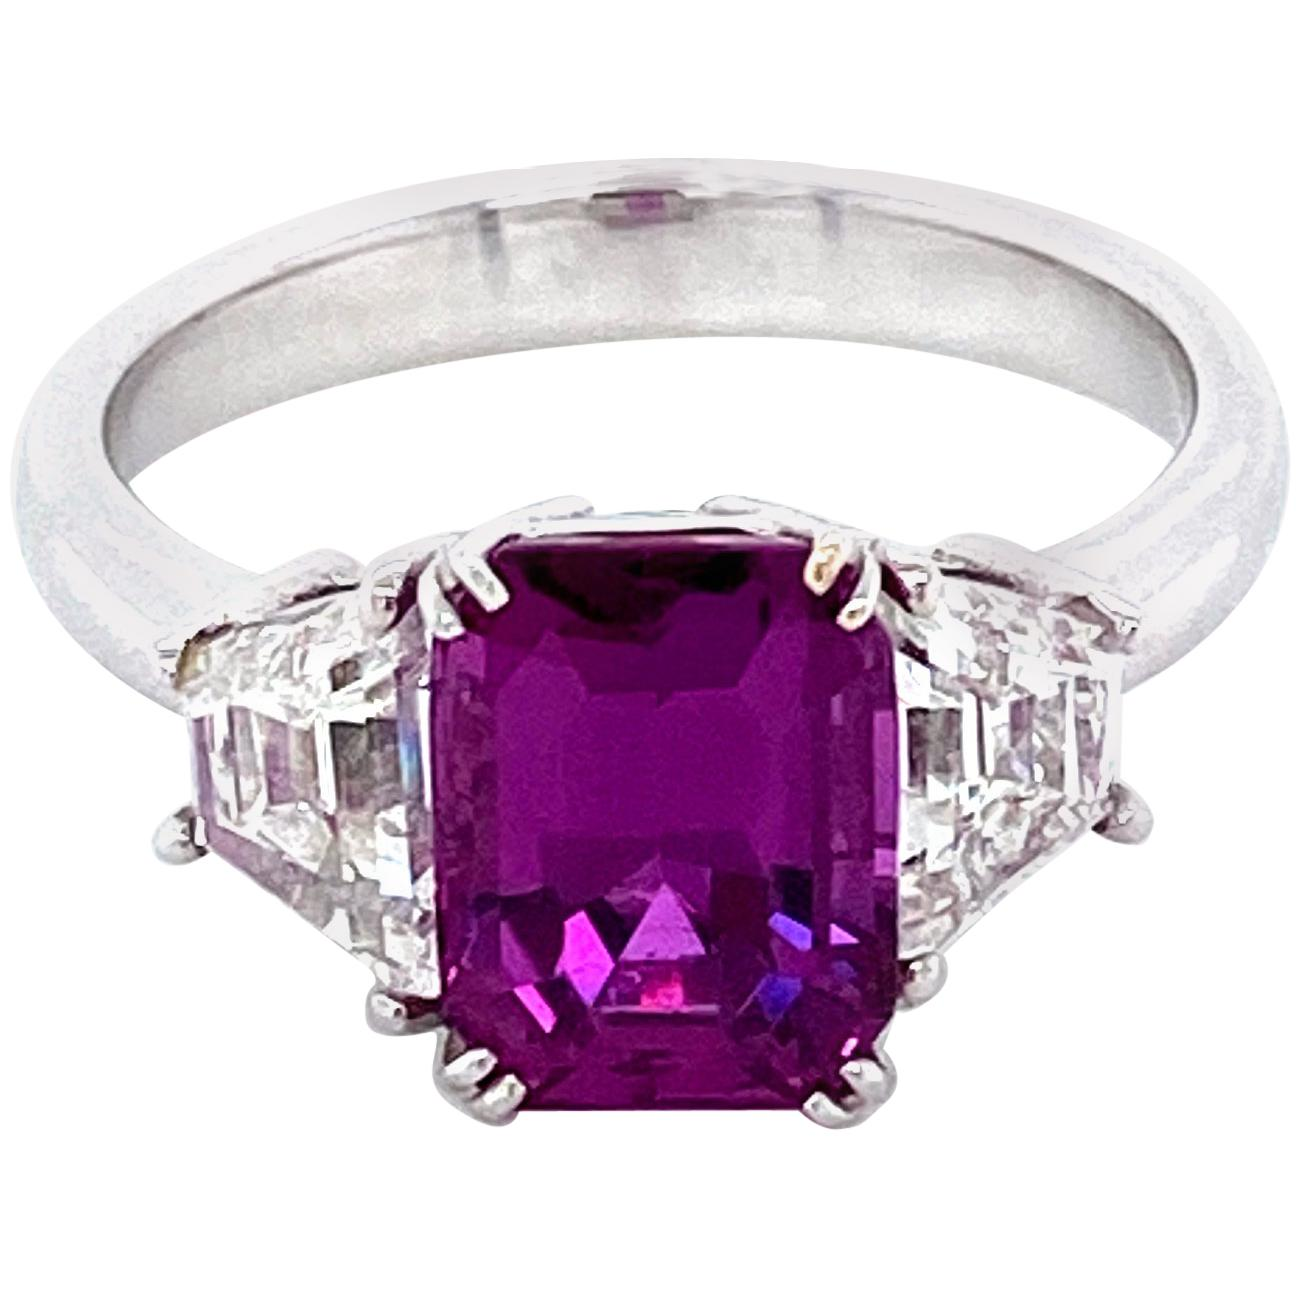 3.11 Carat Emerald Cut Pink Sapphire and Diamond White Gold Engagement Ring